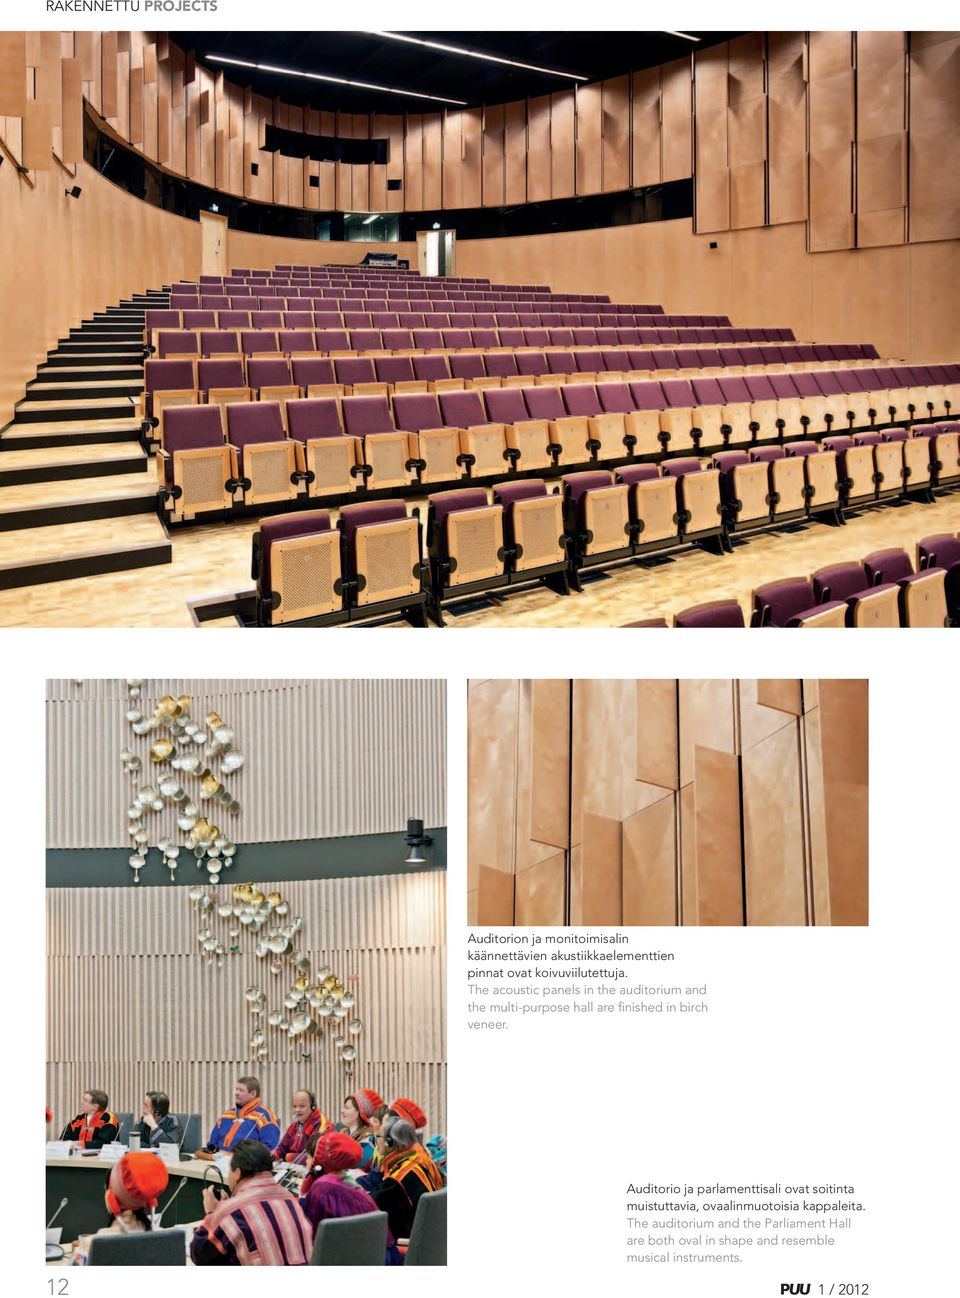 The acoustic panels in the auditorium and the multi-purpose hall are finished in birch veneer.